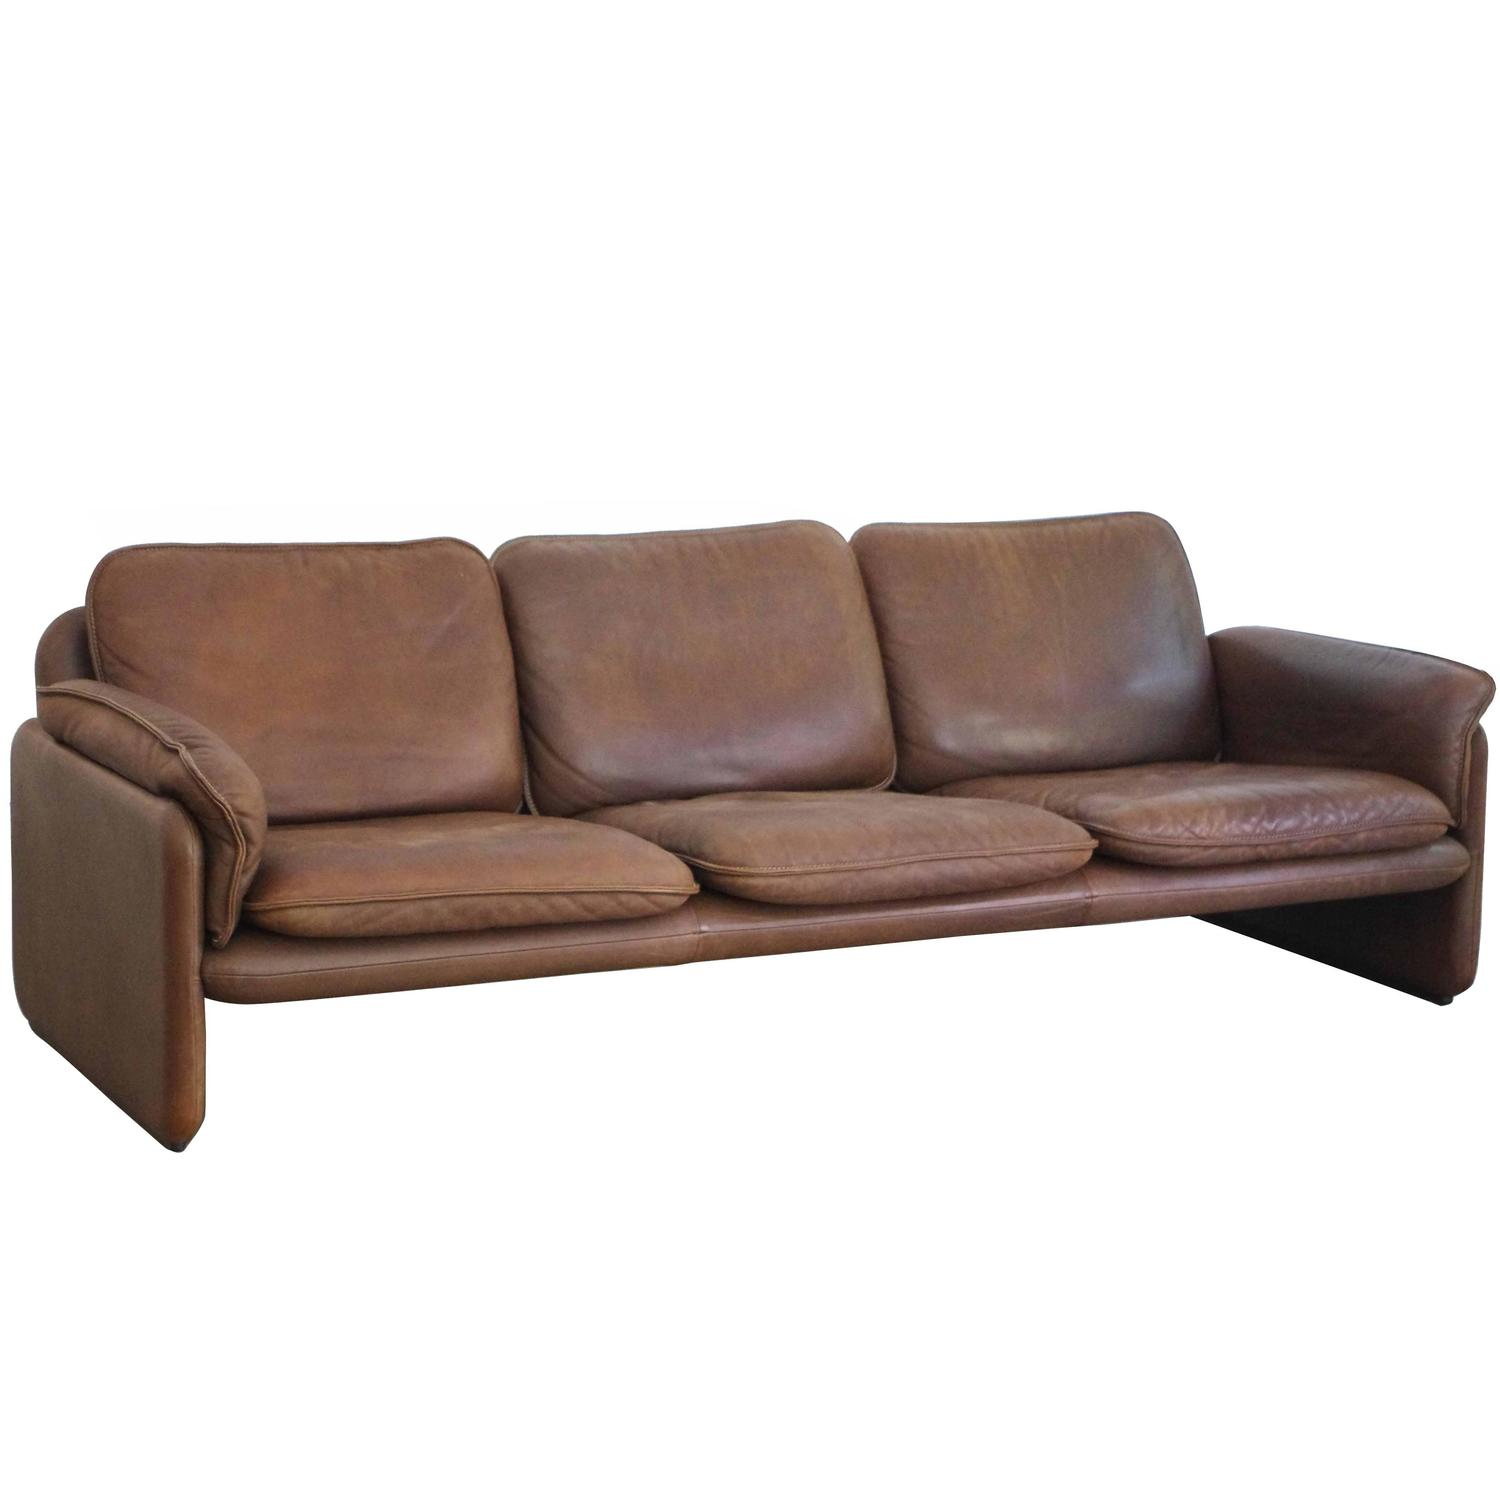 ds 61 leather sofa by de sede at 1stdibs. Black Bedroom Furniture Sets. Home Design Ideas